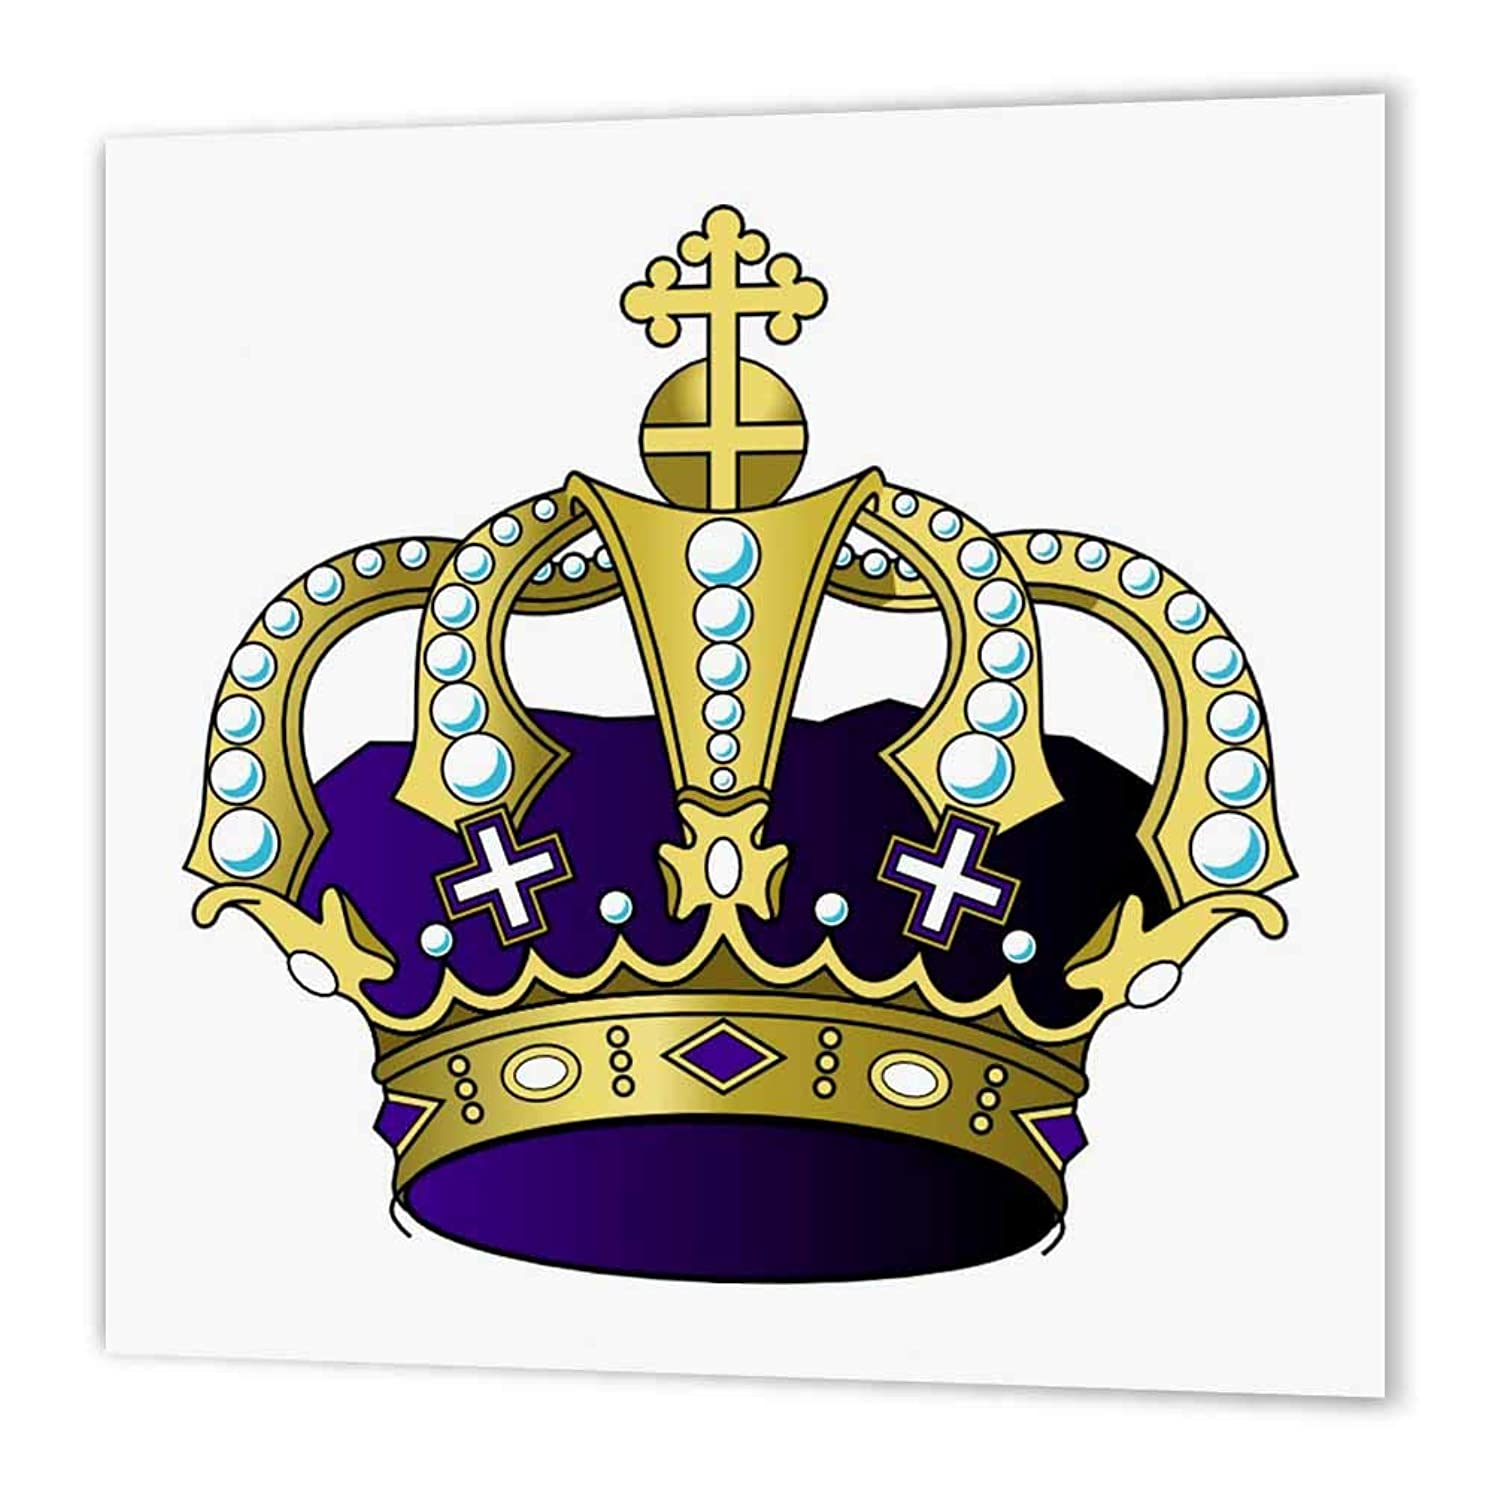 3dRose ht_41671_2 Royal Purple N Gold Crown-Iron on Heat Transfer for White Material, 6 by 6-Inch